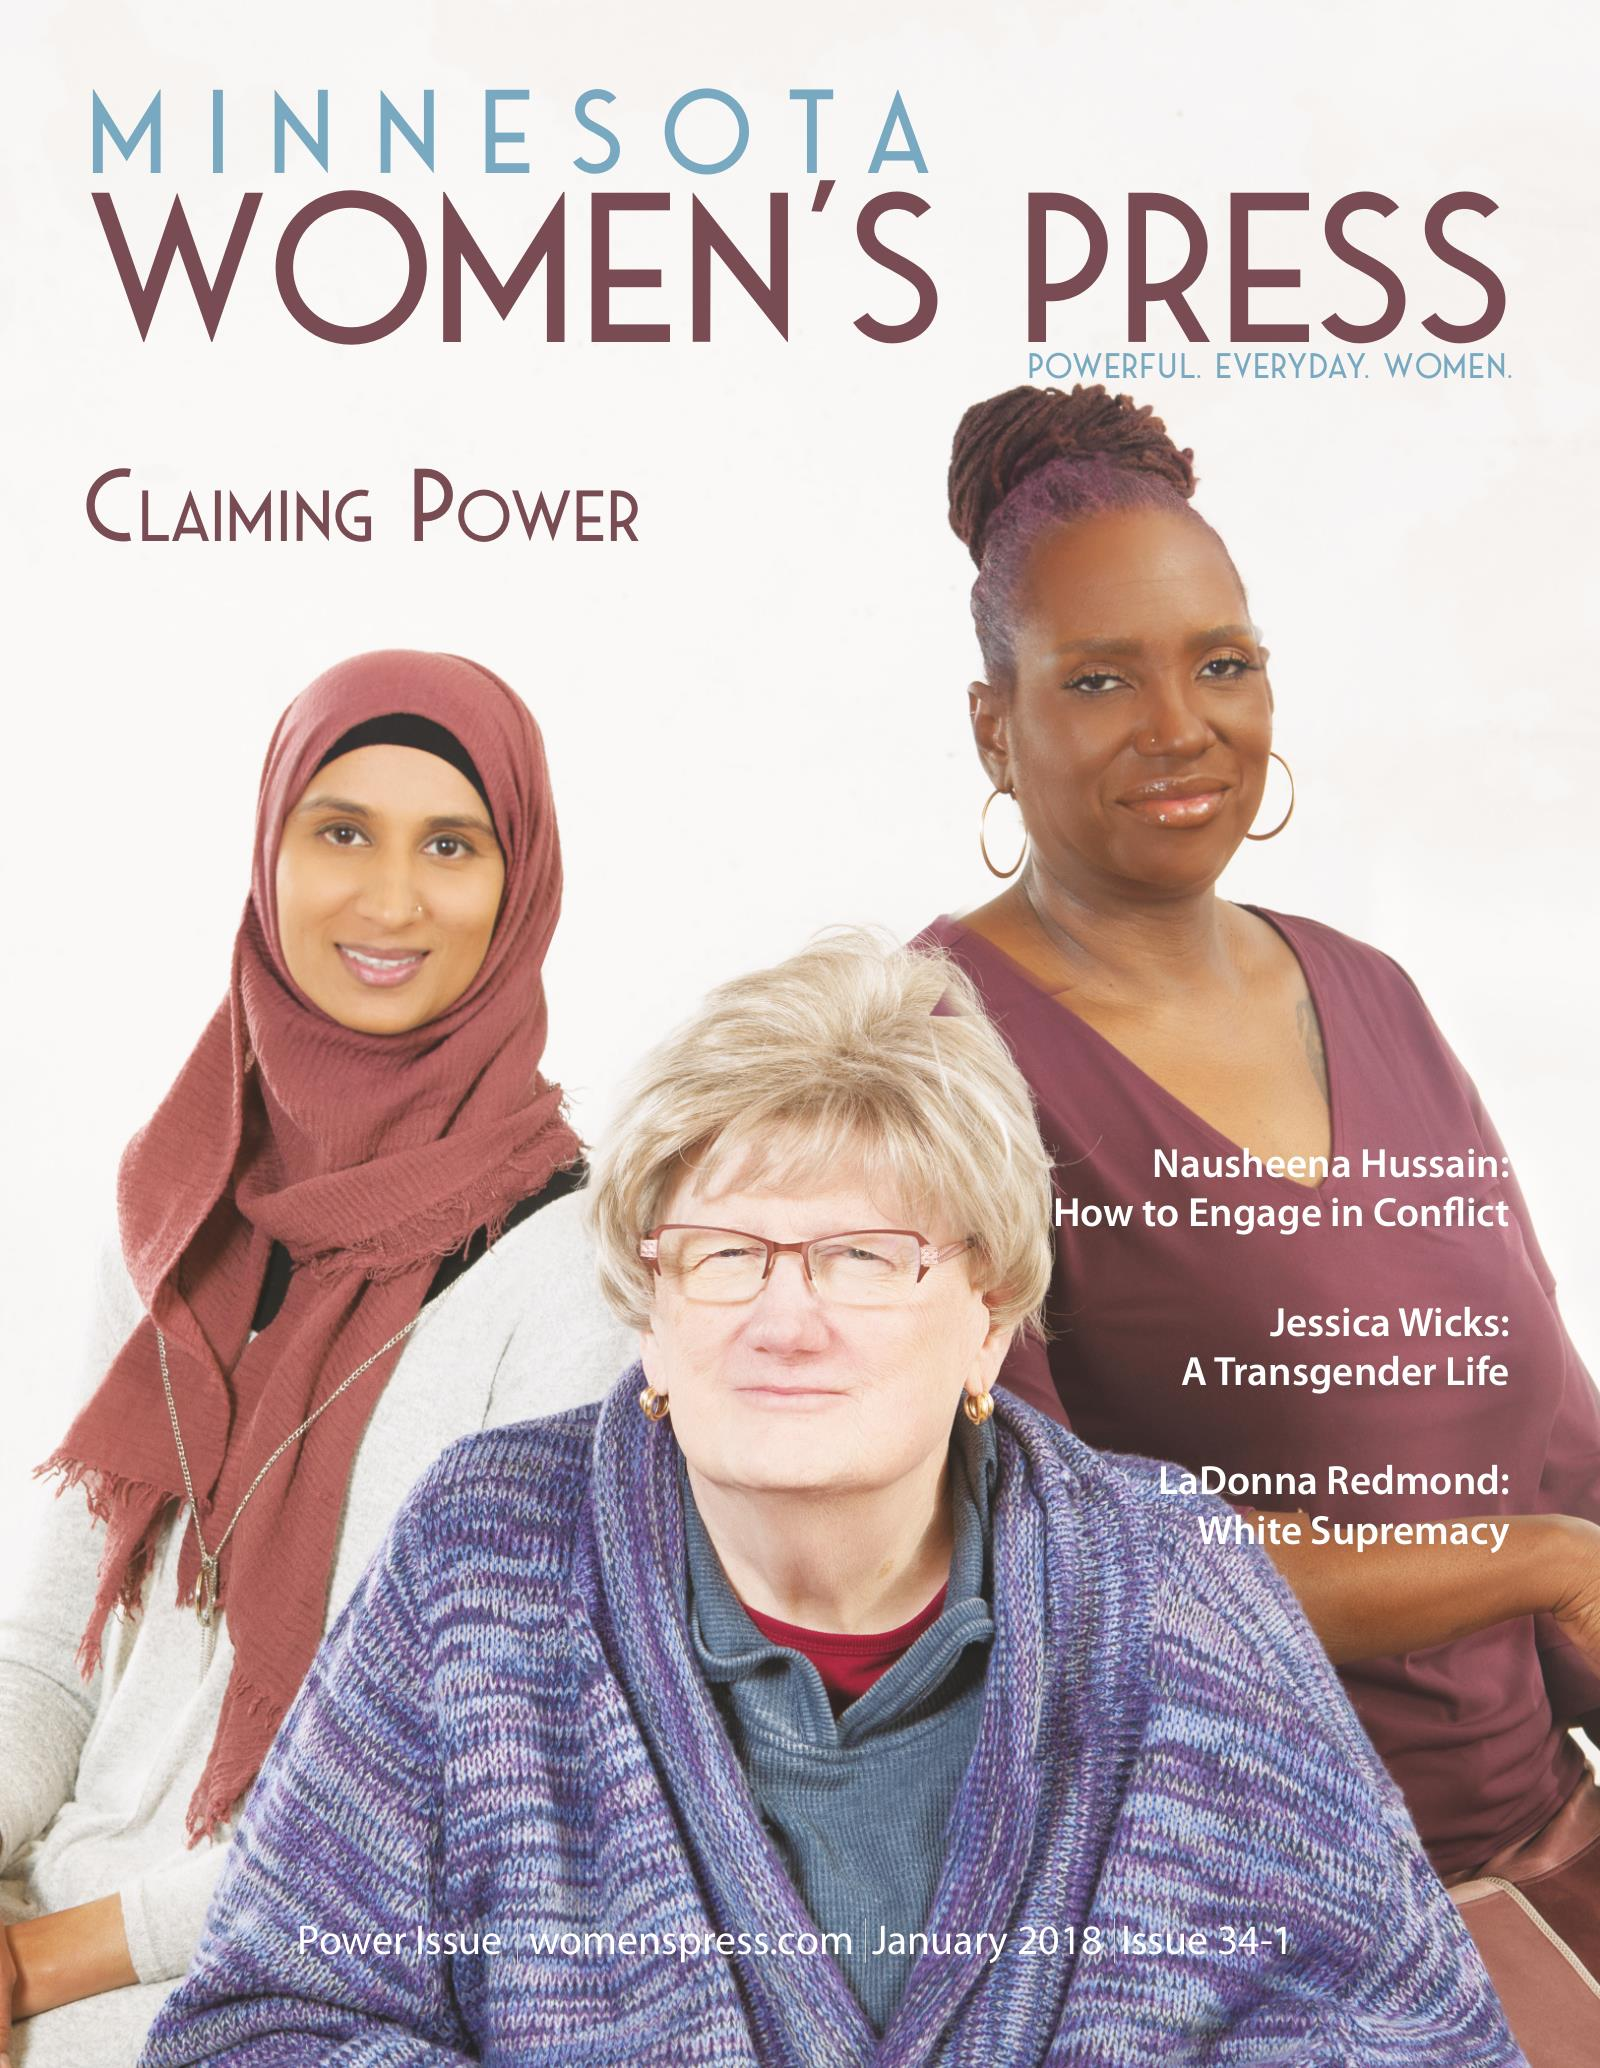 Photo Credit: Minnesota Women's Press